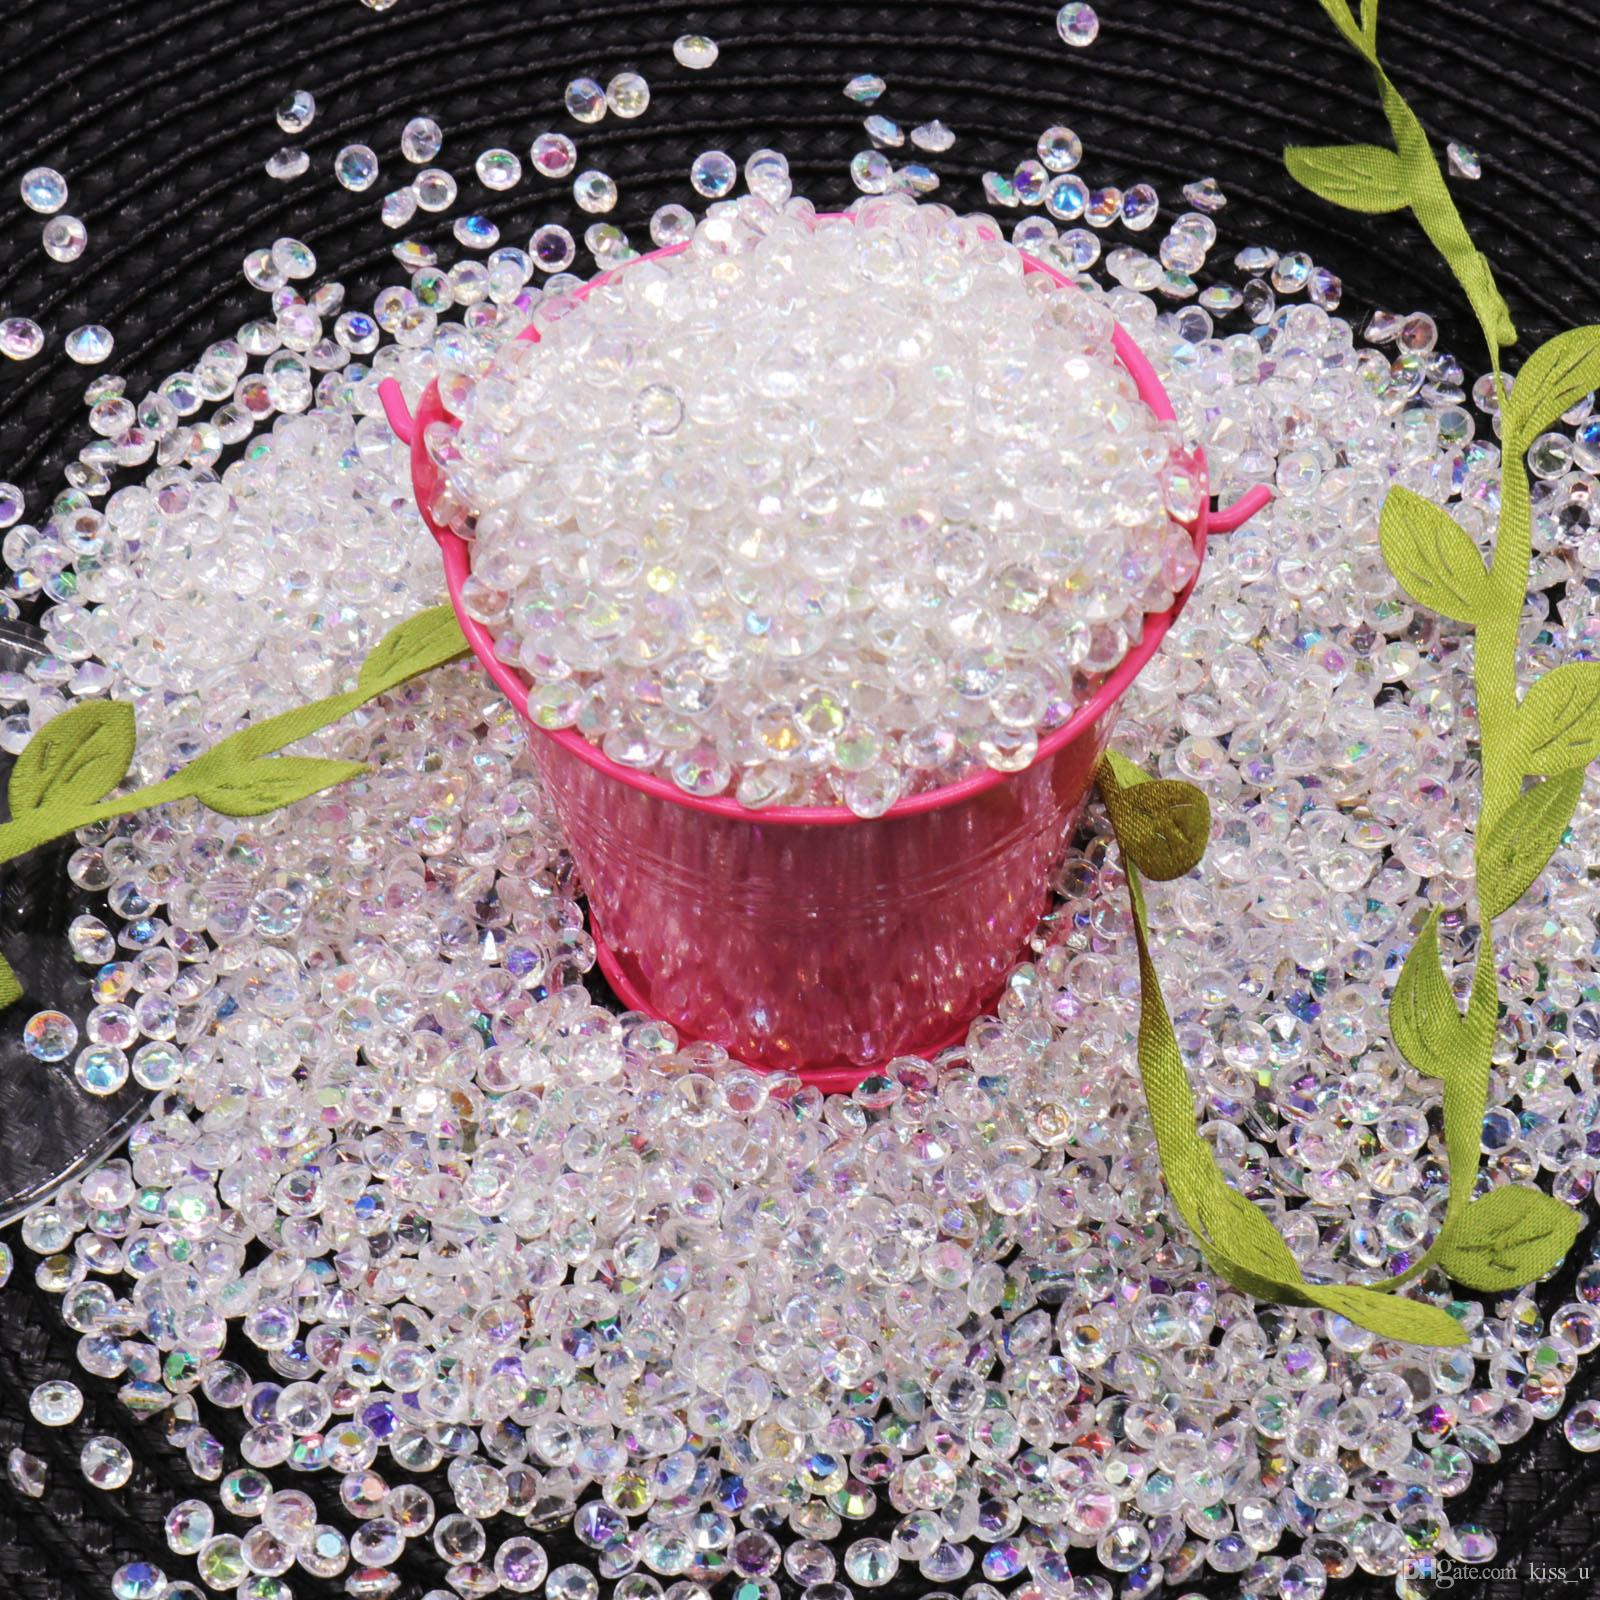 2000pcs 4.5mm Acrylic Diamond Crystal Bling Transparent Confetti For Wedding Party Decoration Confetti Table Scatter Beads